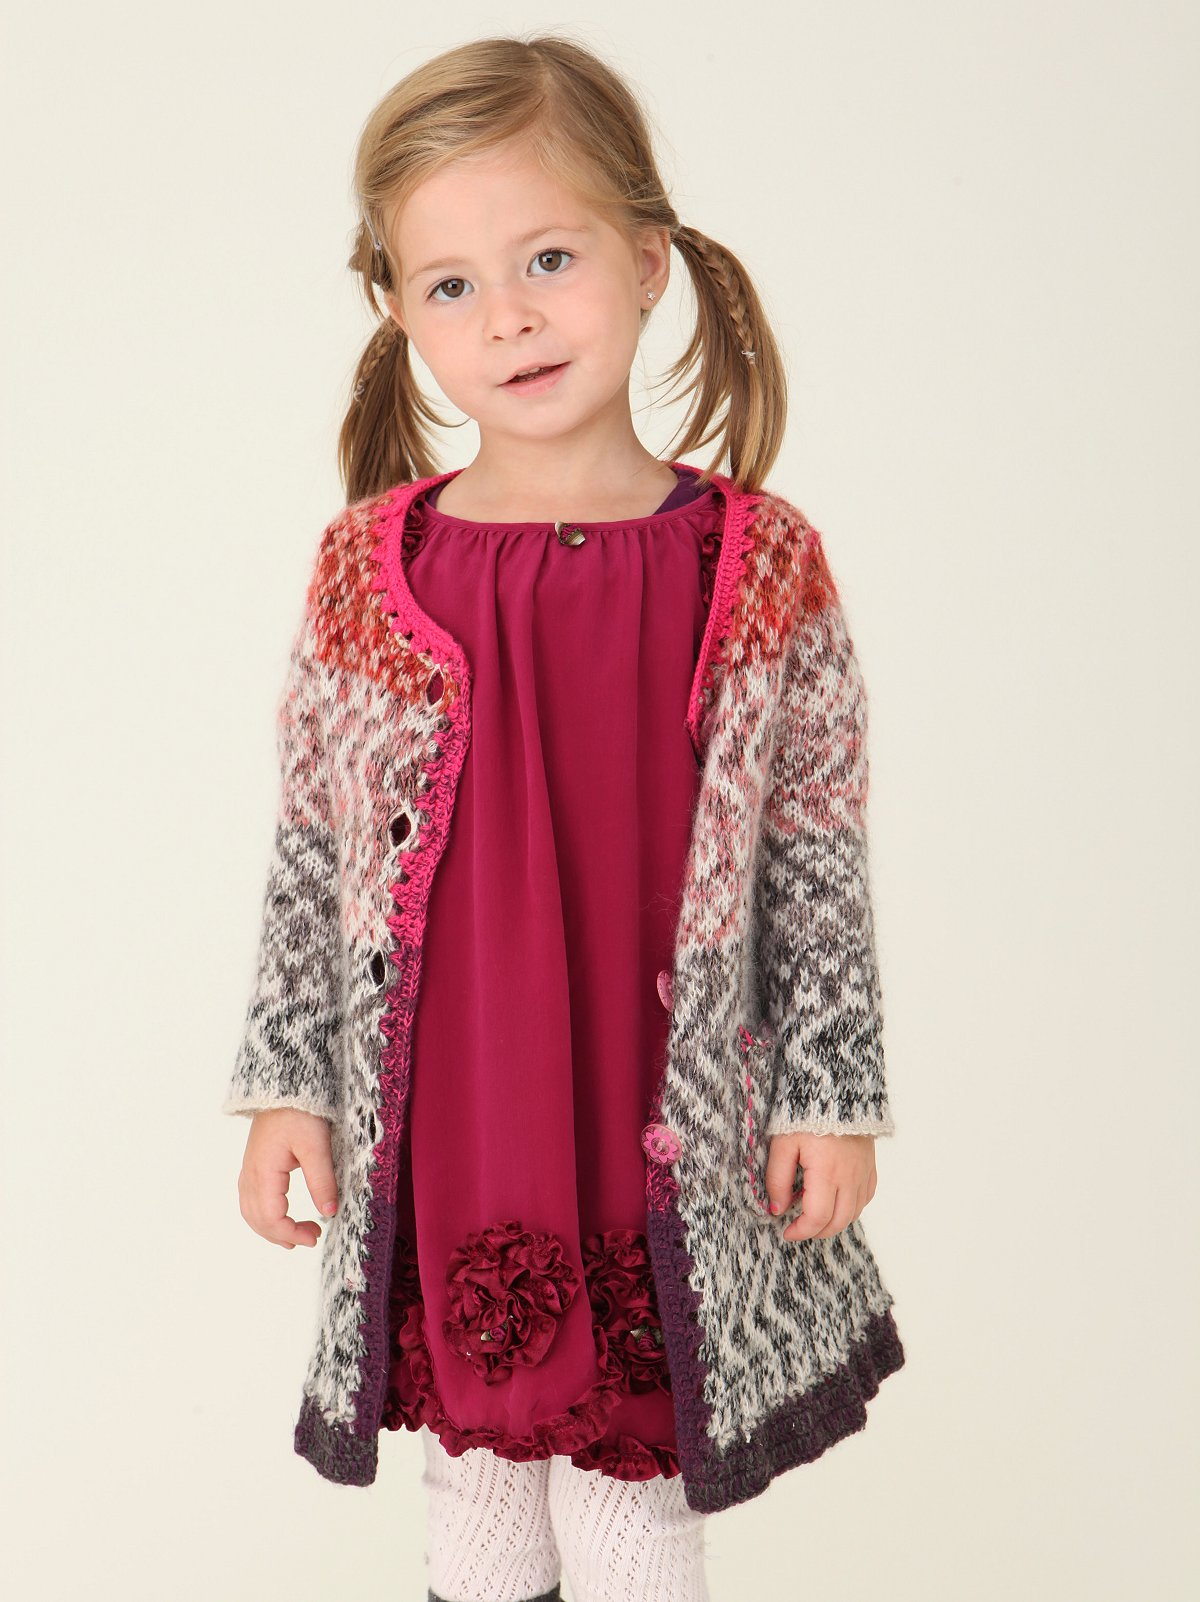 Wee People Thumbelina Sweater Coat